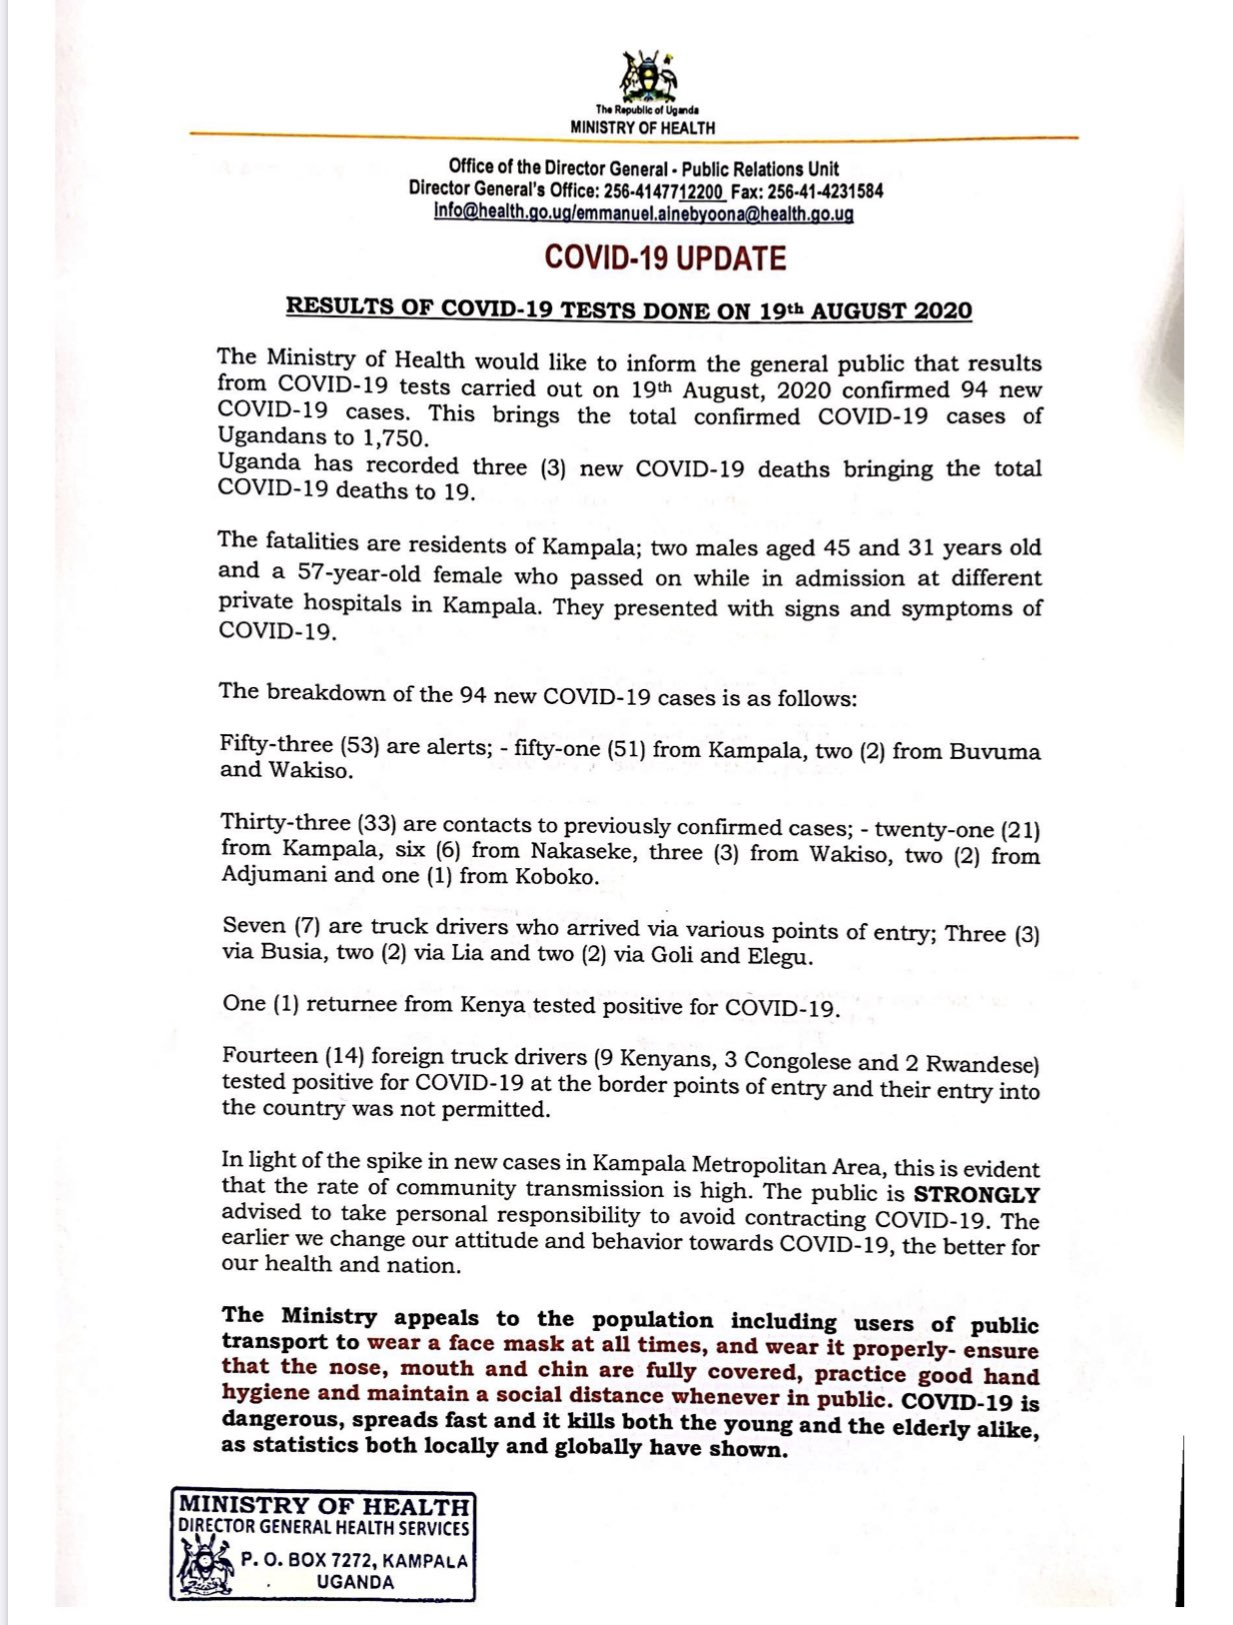 MoH statement of August 20